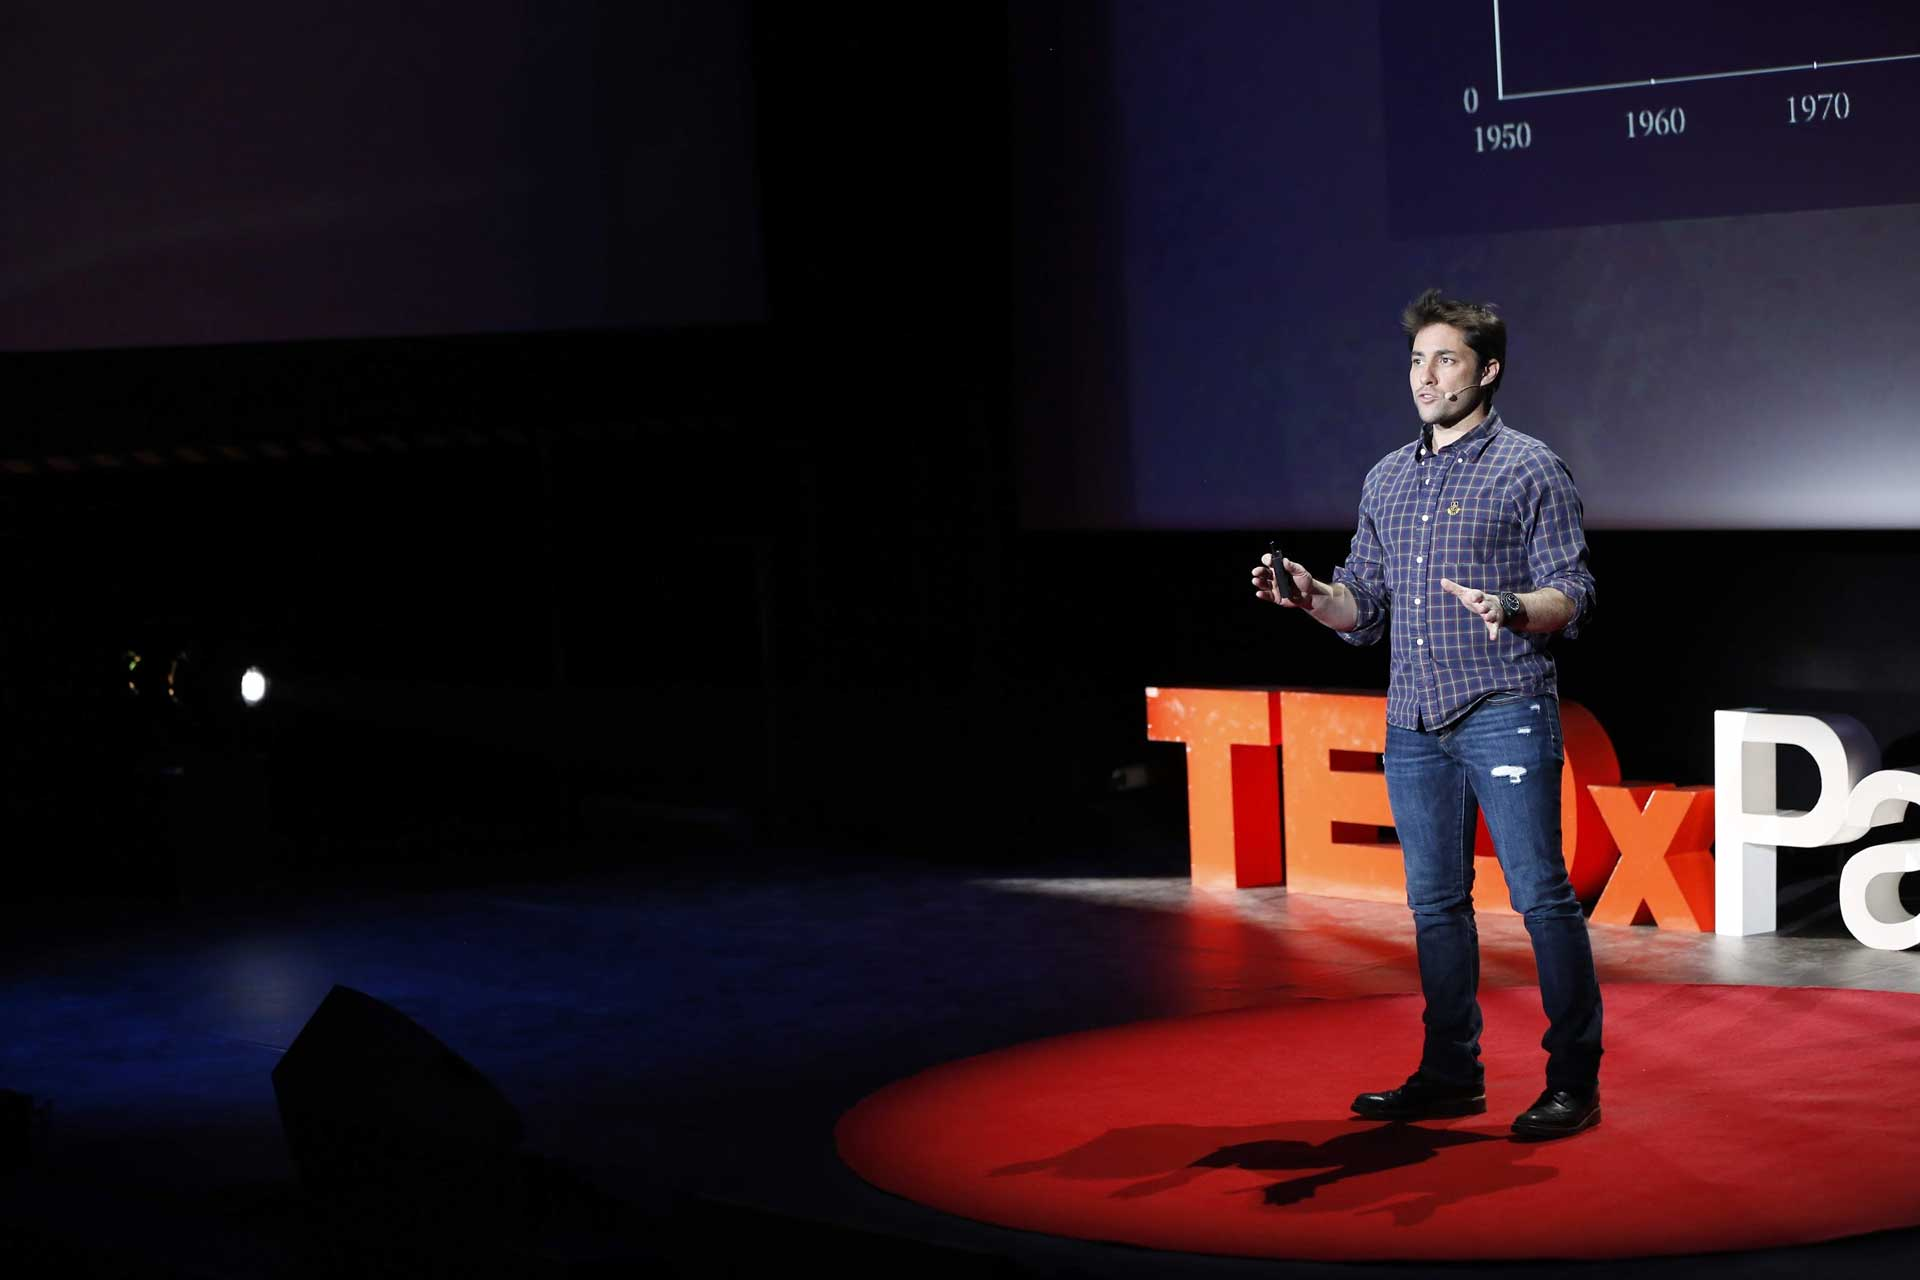 conference-TEDxParis-2013-12.jpg